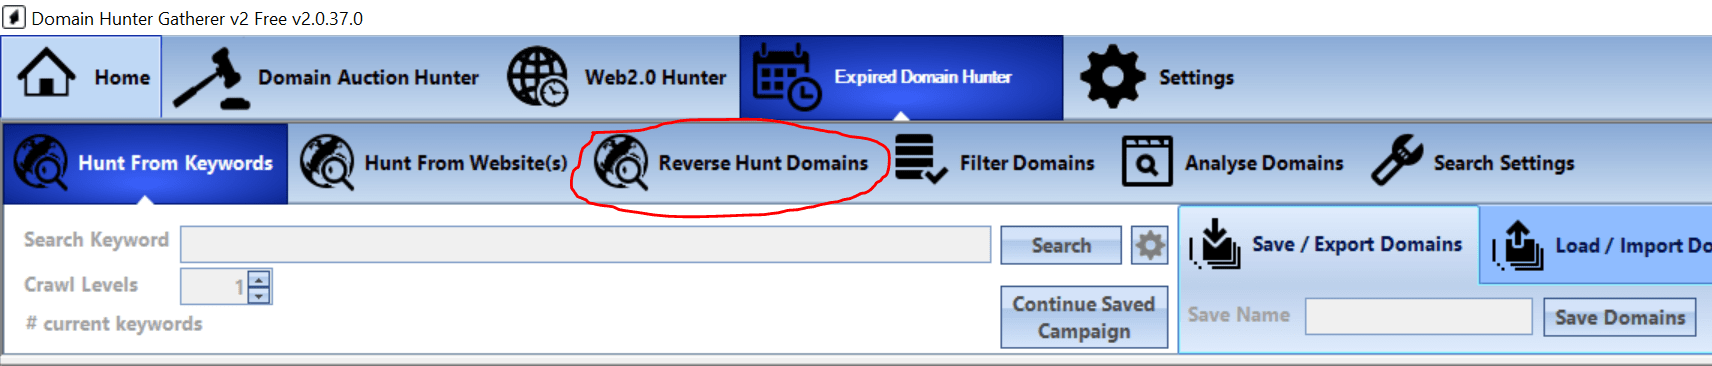 Reverse hunting domains